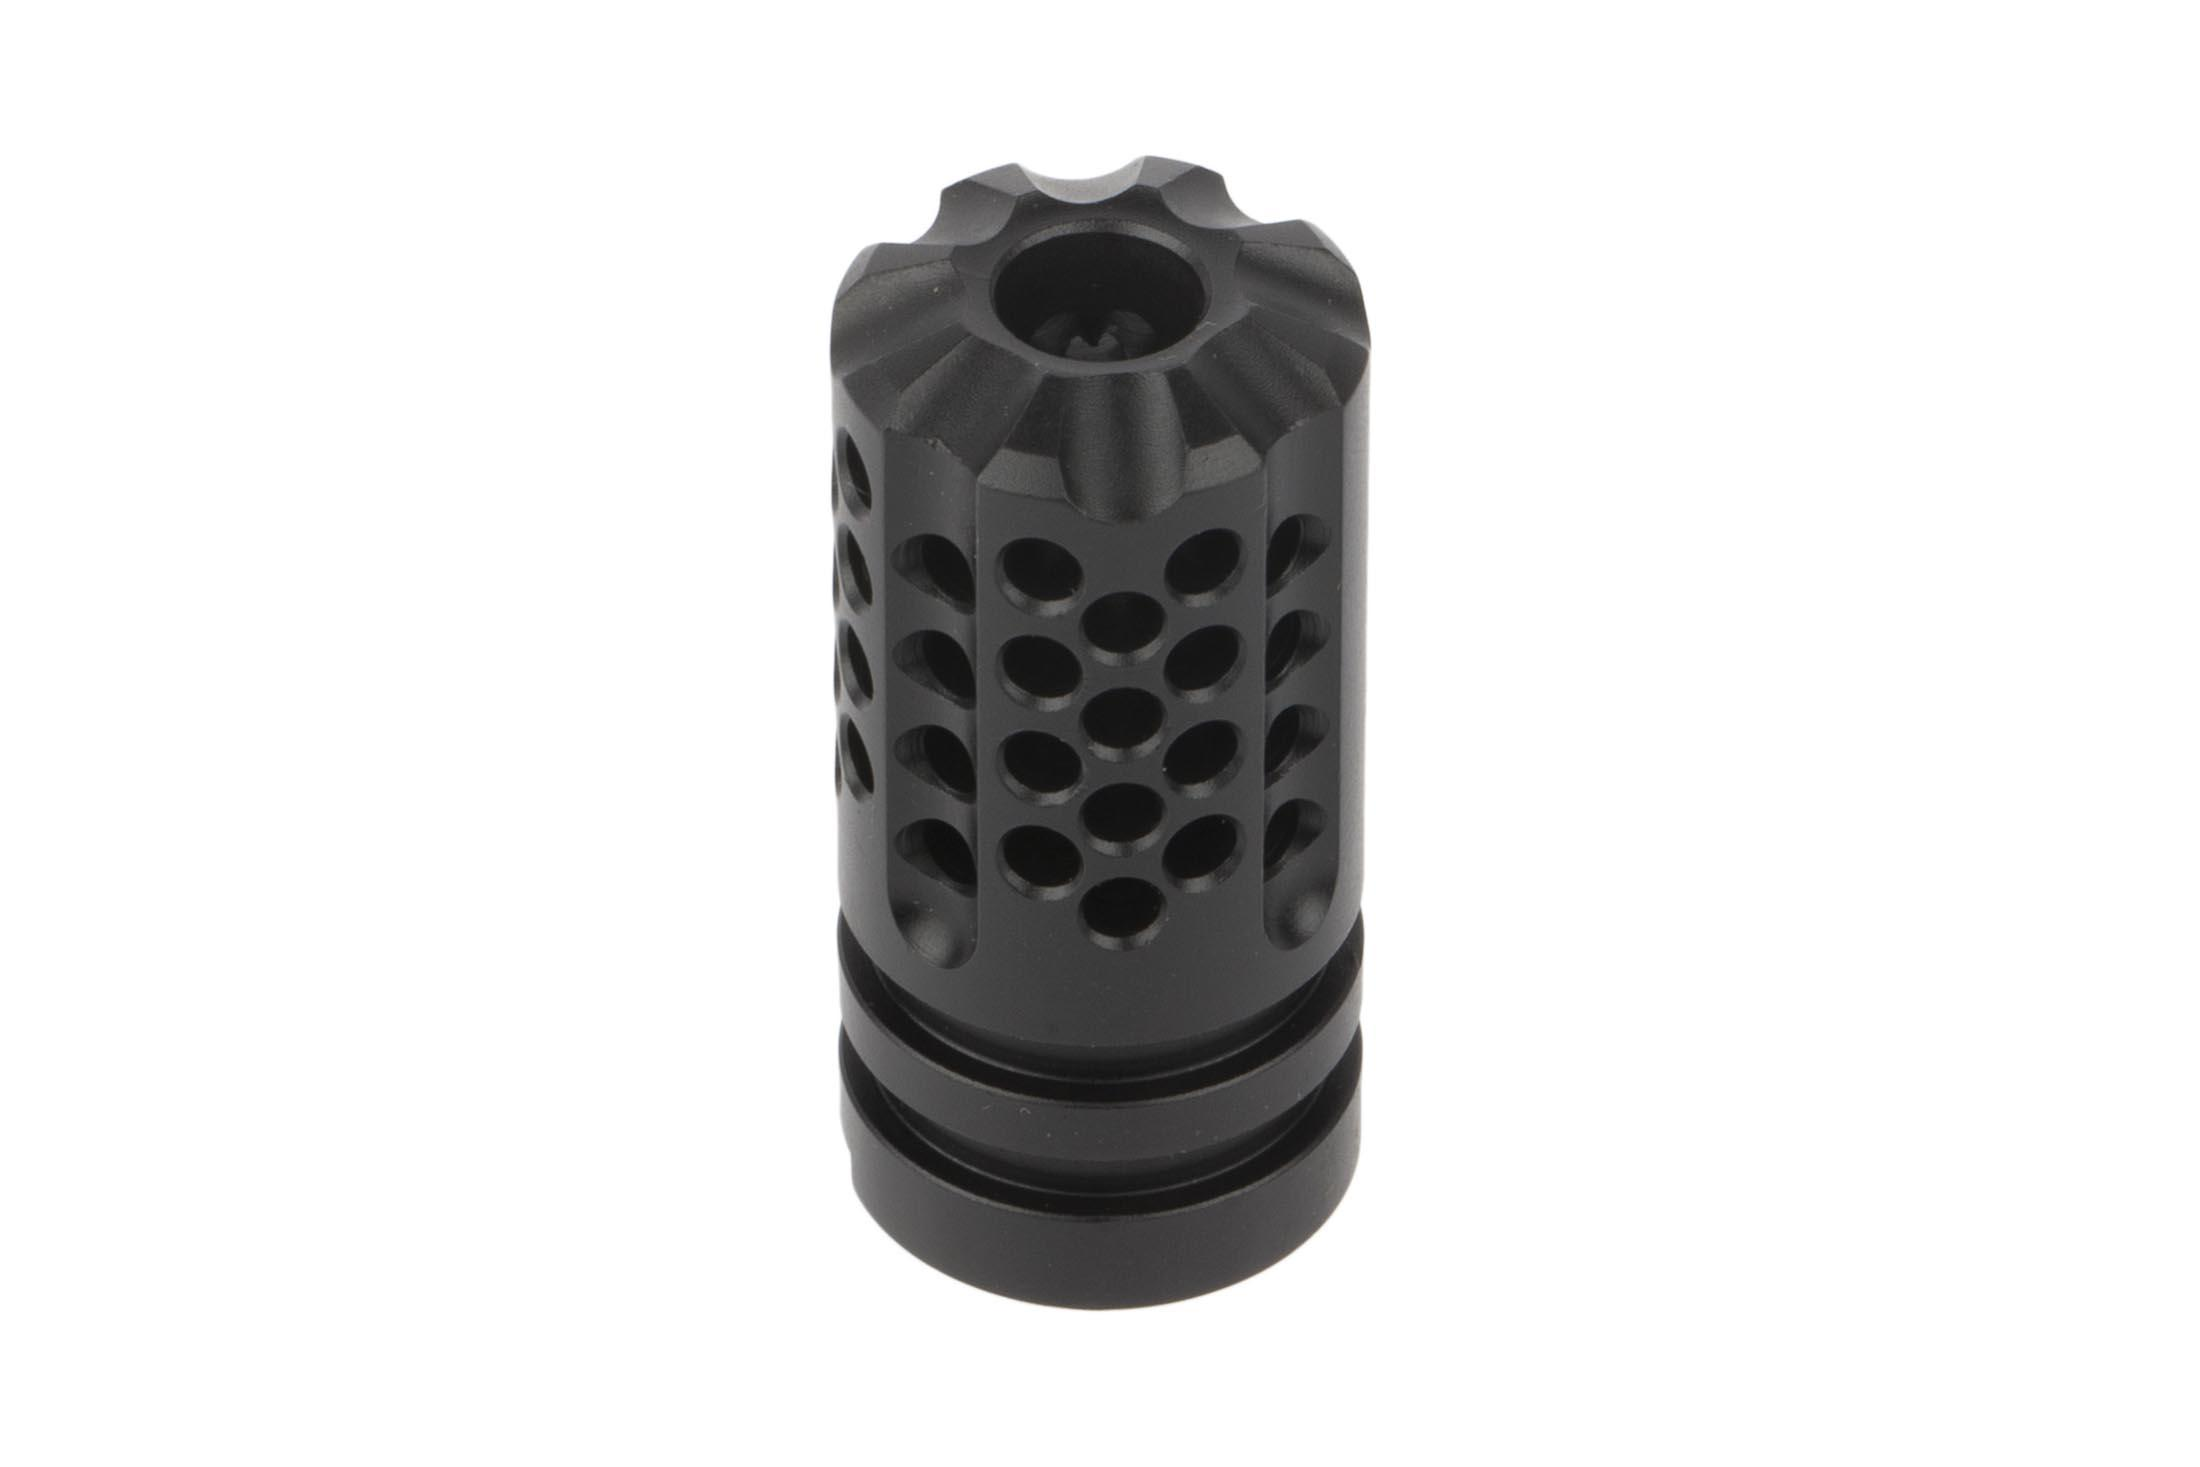 The SLR AK-47 Synergy Mini compensator has a 14x1 left hand thread pitch